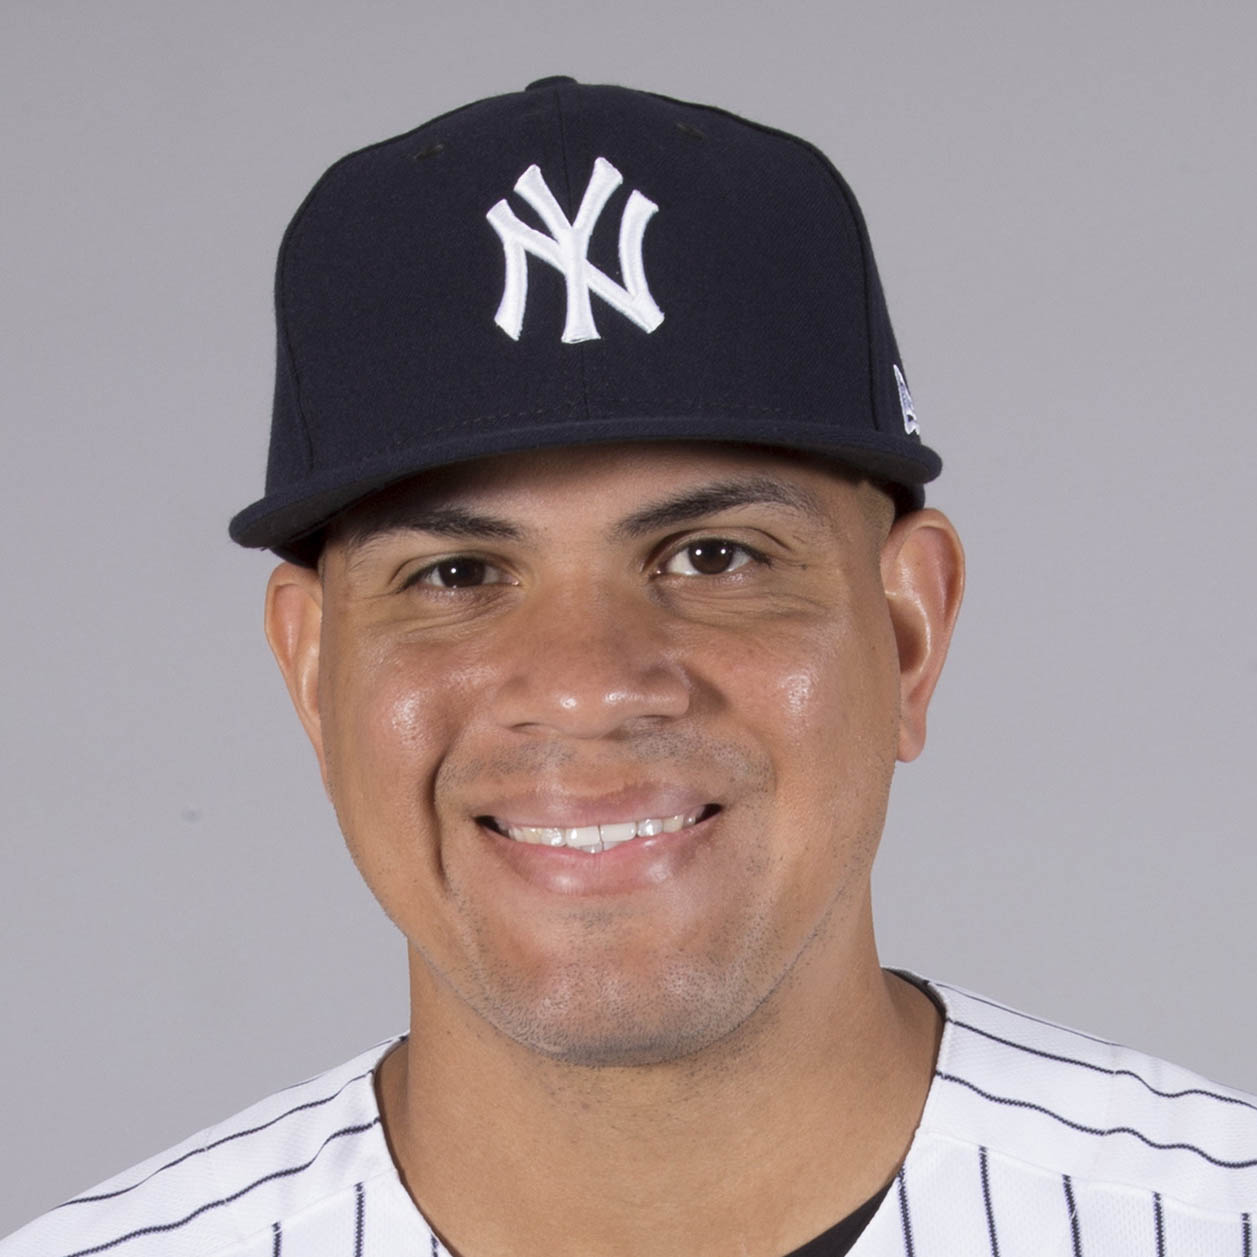 Dellin Betances (R) Headshot